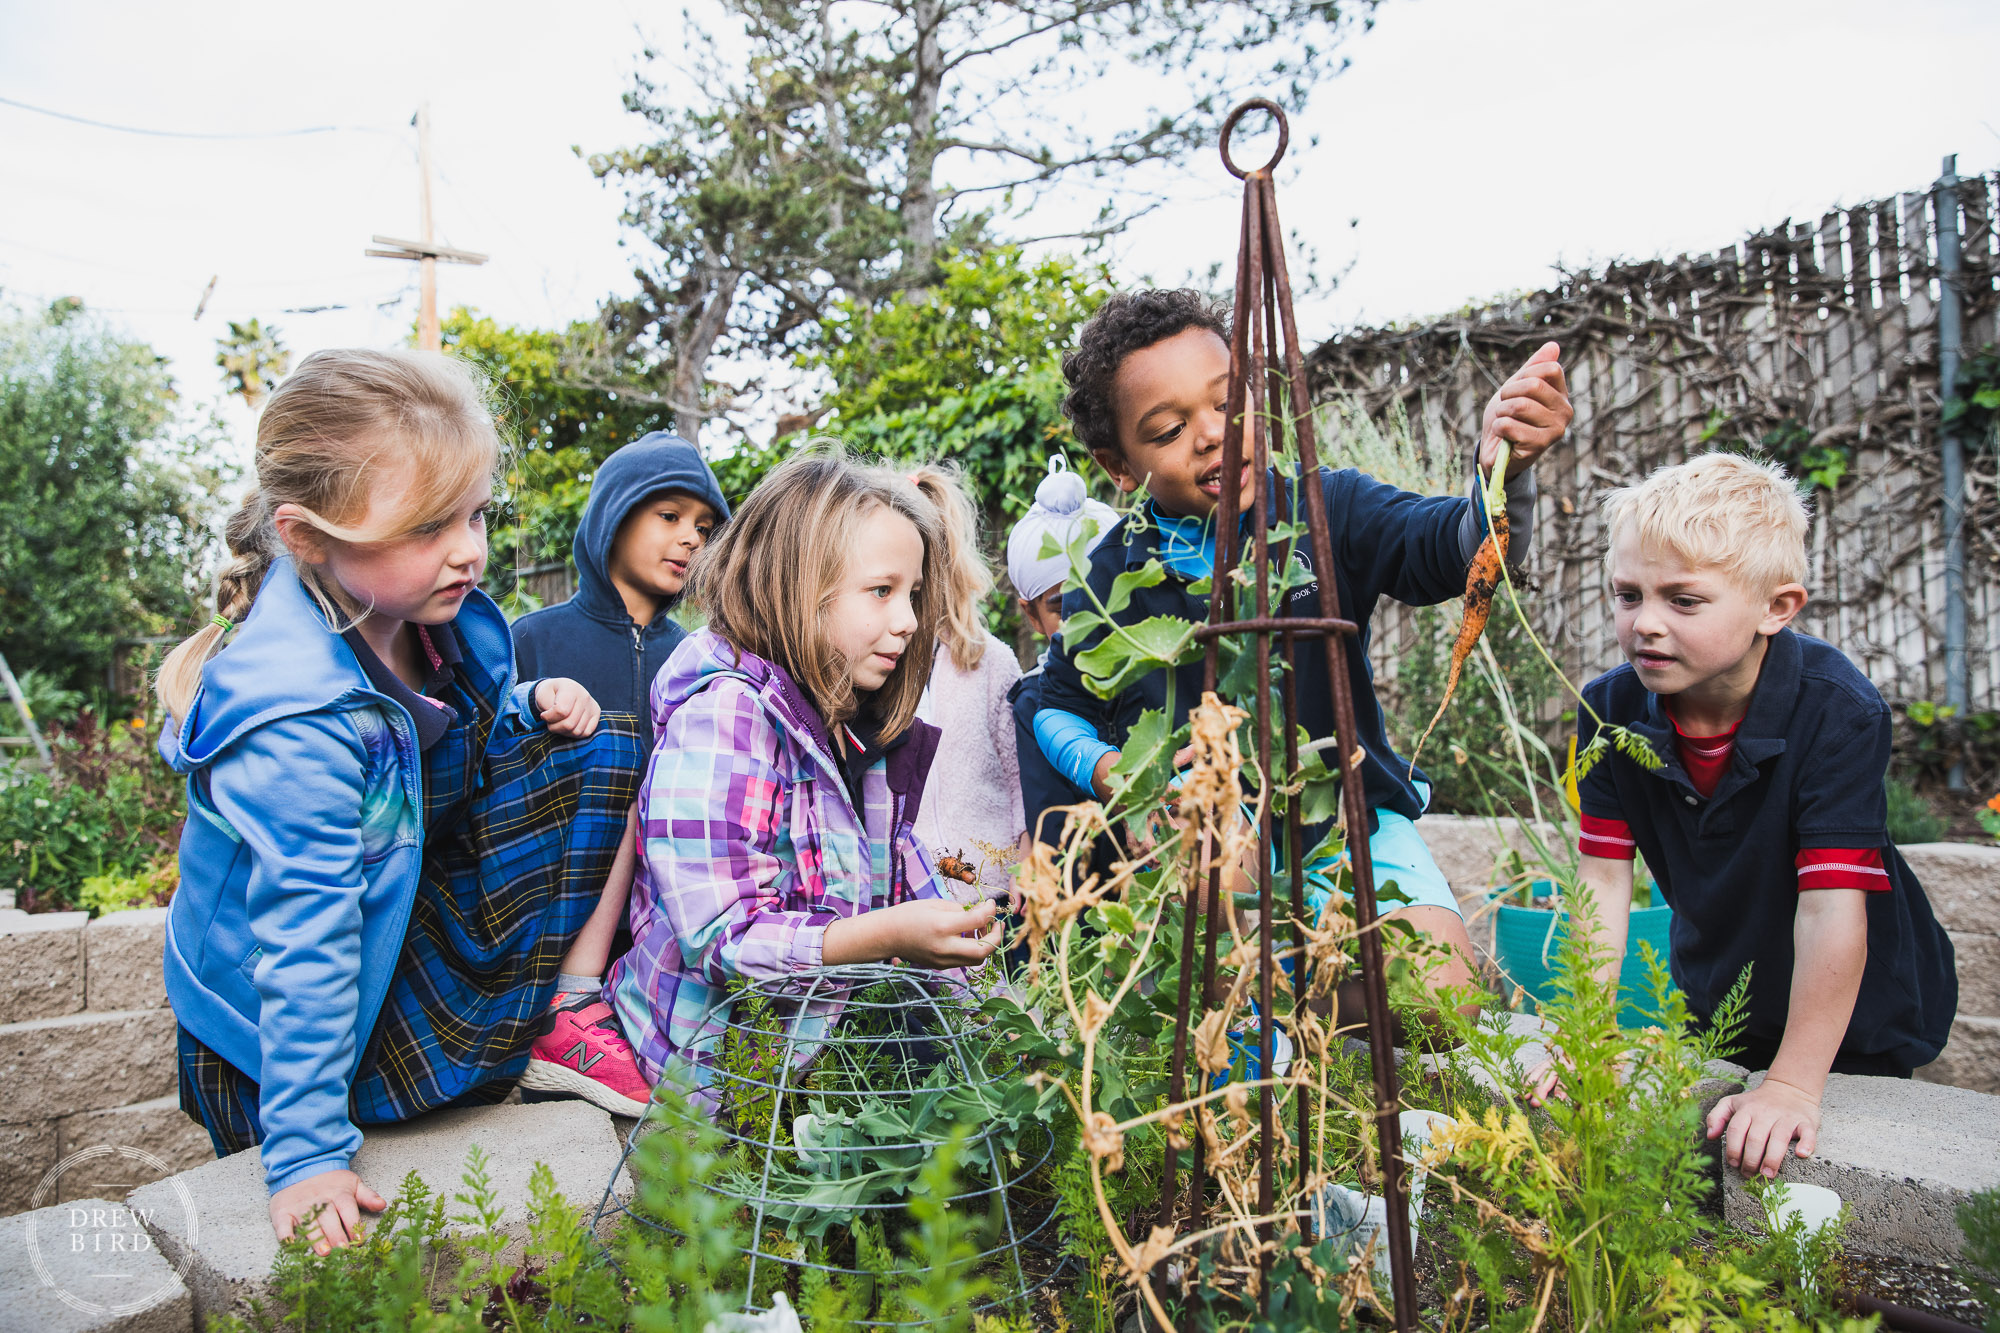 A group of second grade students pull carrots out of the learning garden at Hillbrook School in Silicon Valley. San Francisco education brand photography and Oakland independent school photographer Drew Bird.